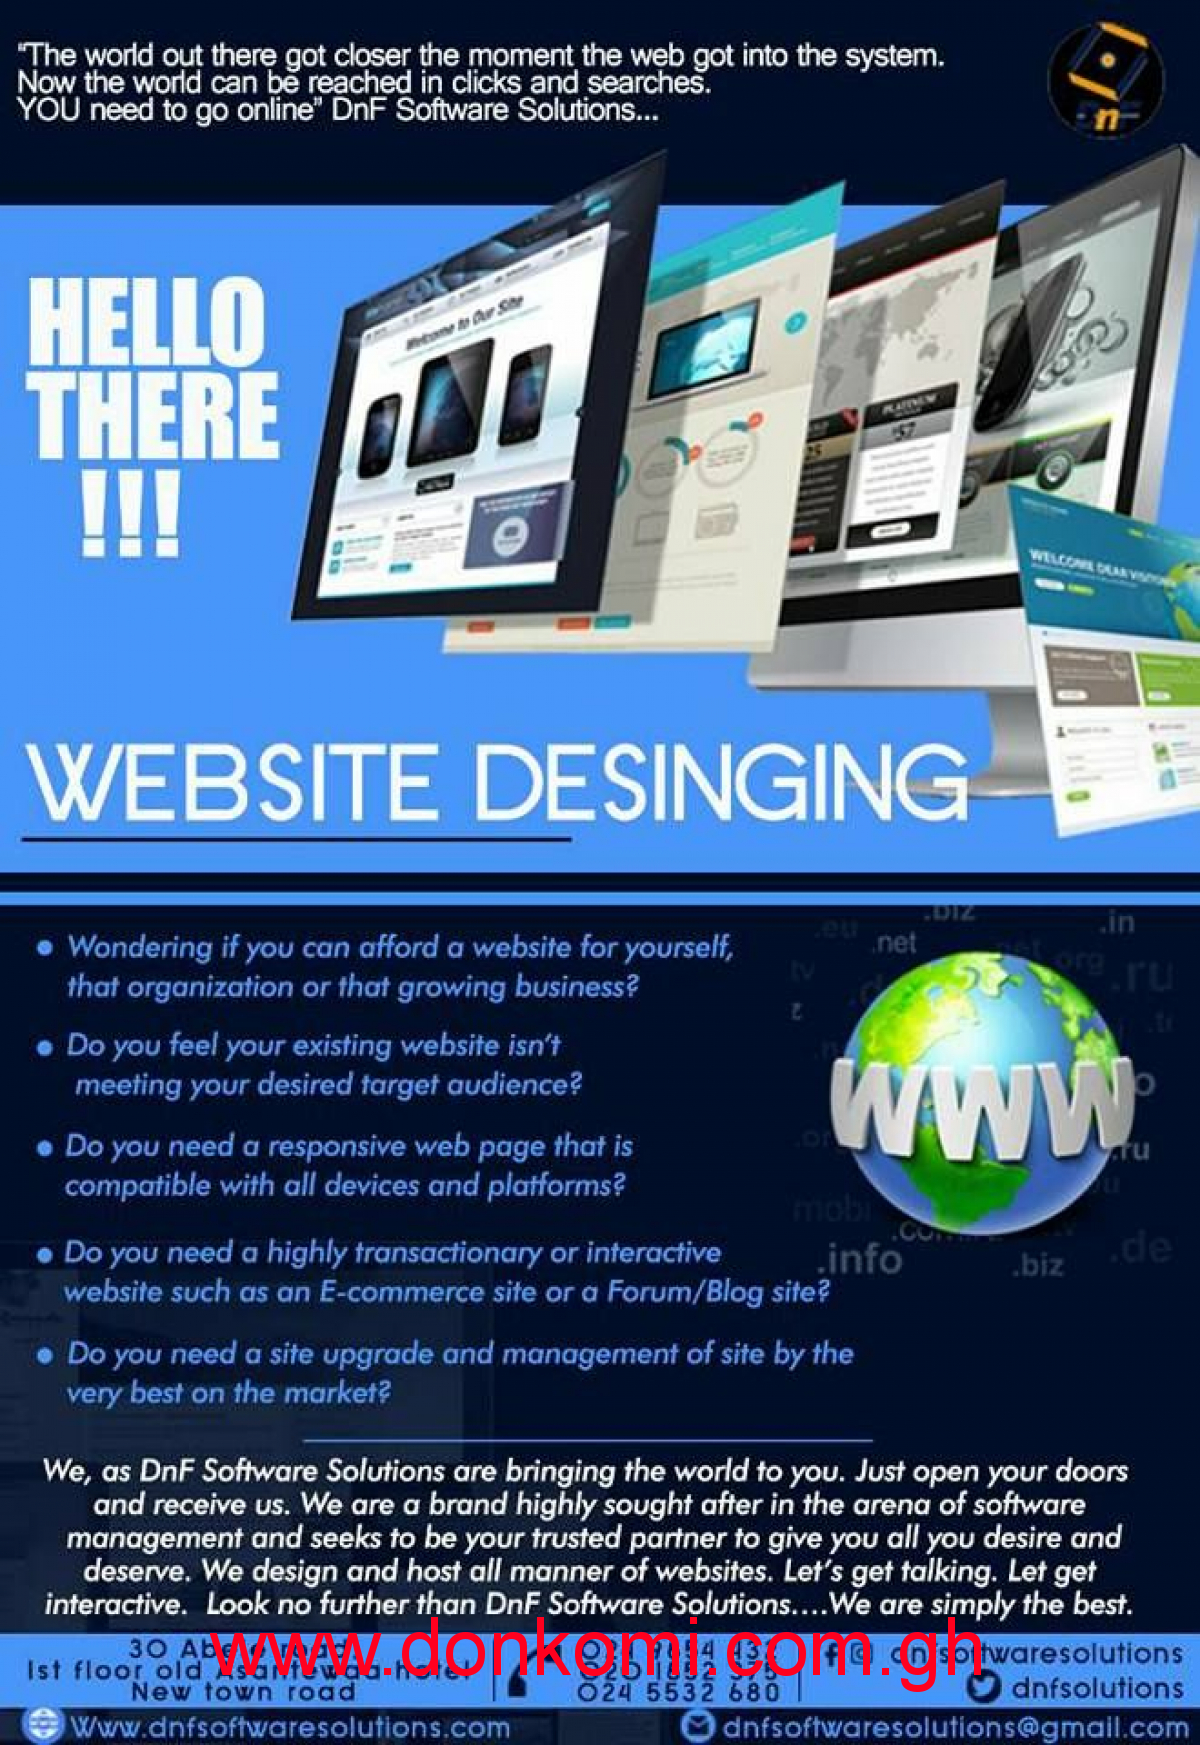 Websites, apps, prints and designs